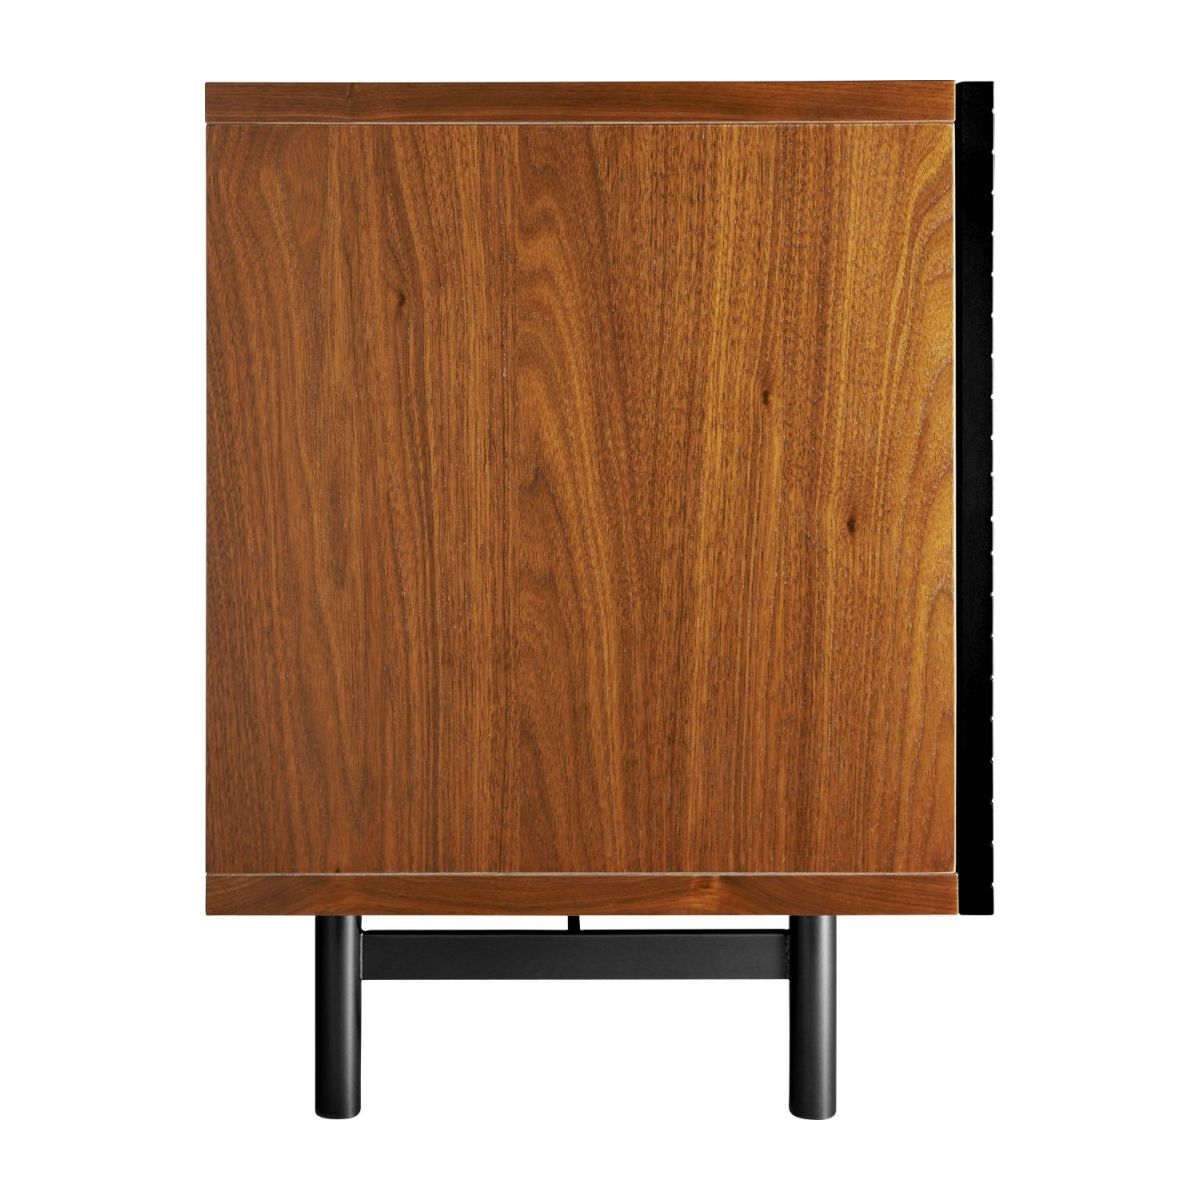 Low walnut sideboard n°6